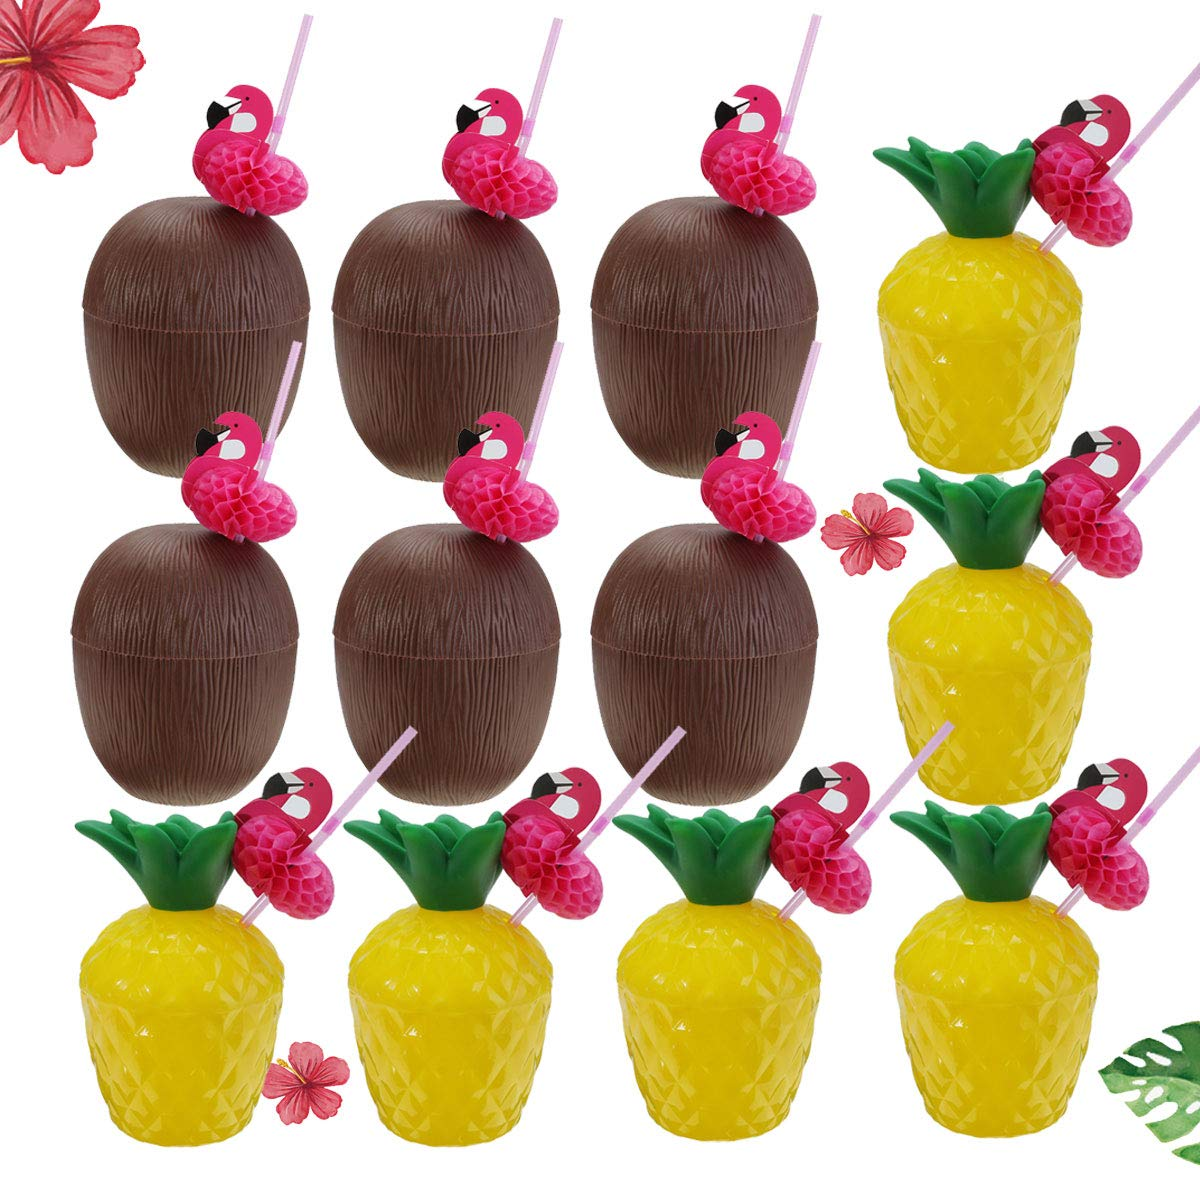 G.CORE 12PCS Leak Prevention Pineapple Drink Cups Hawaiian Luau Plastic Coconut Cups with Flamingo Straws, Hawaii Party Cups Beach Events Children's Party by G.CORE